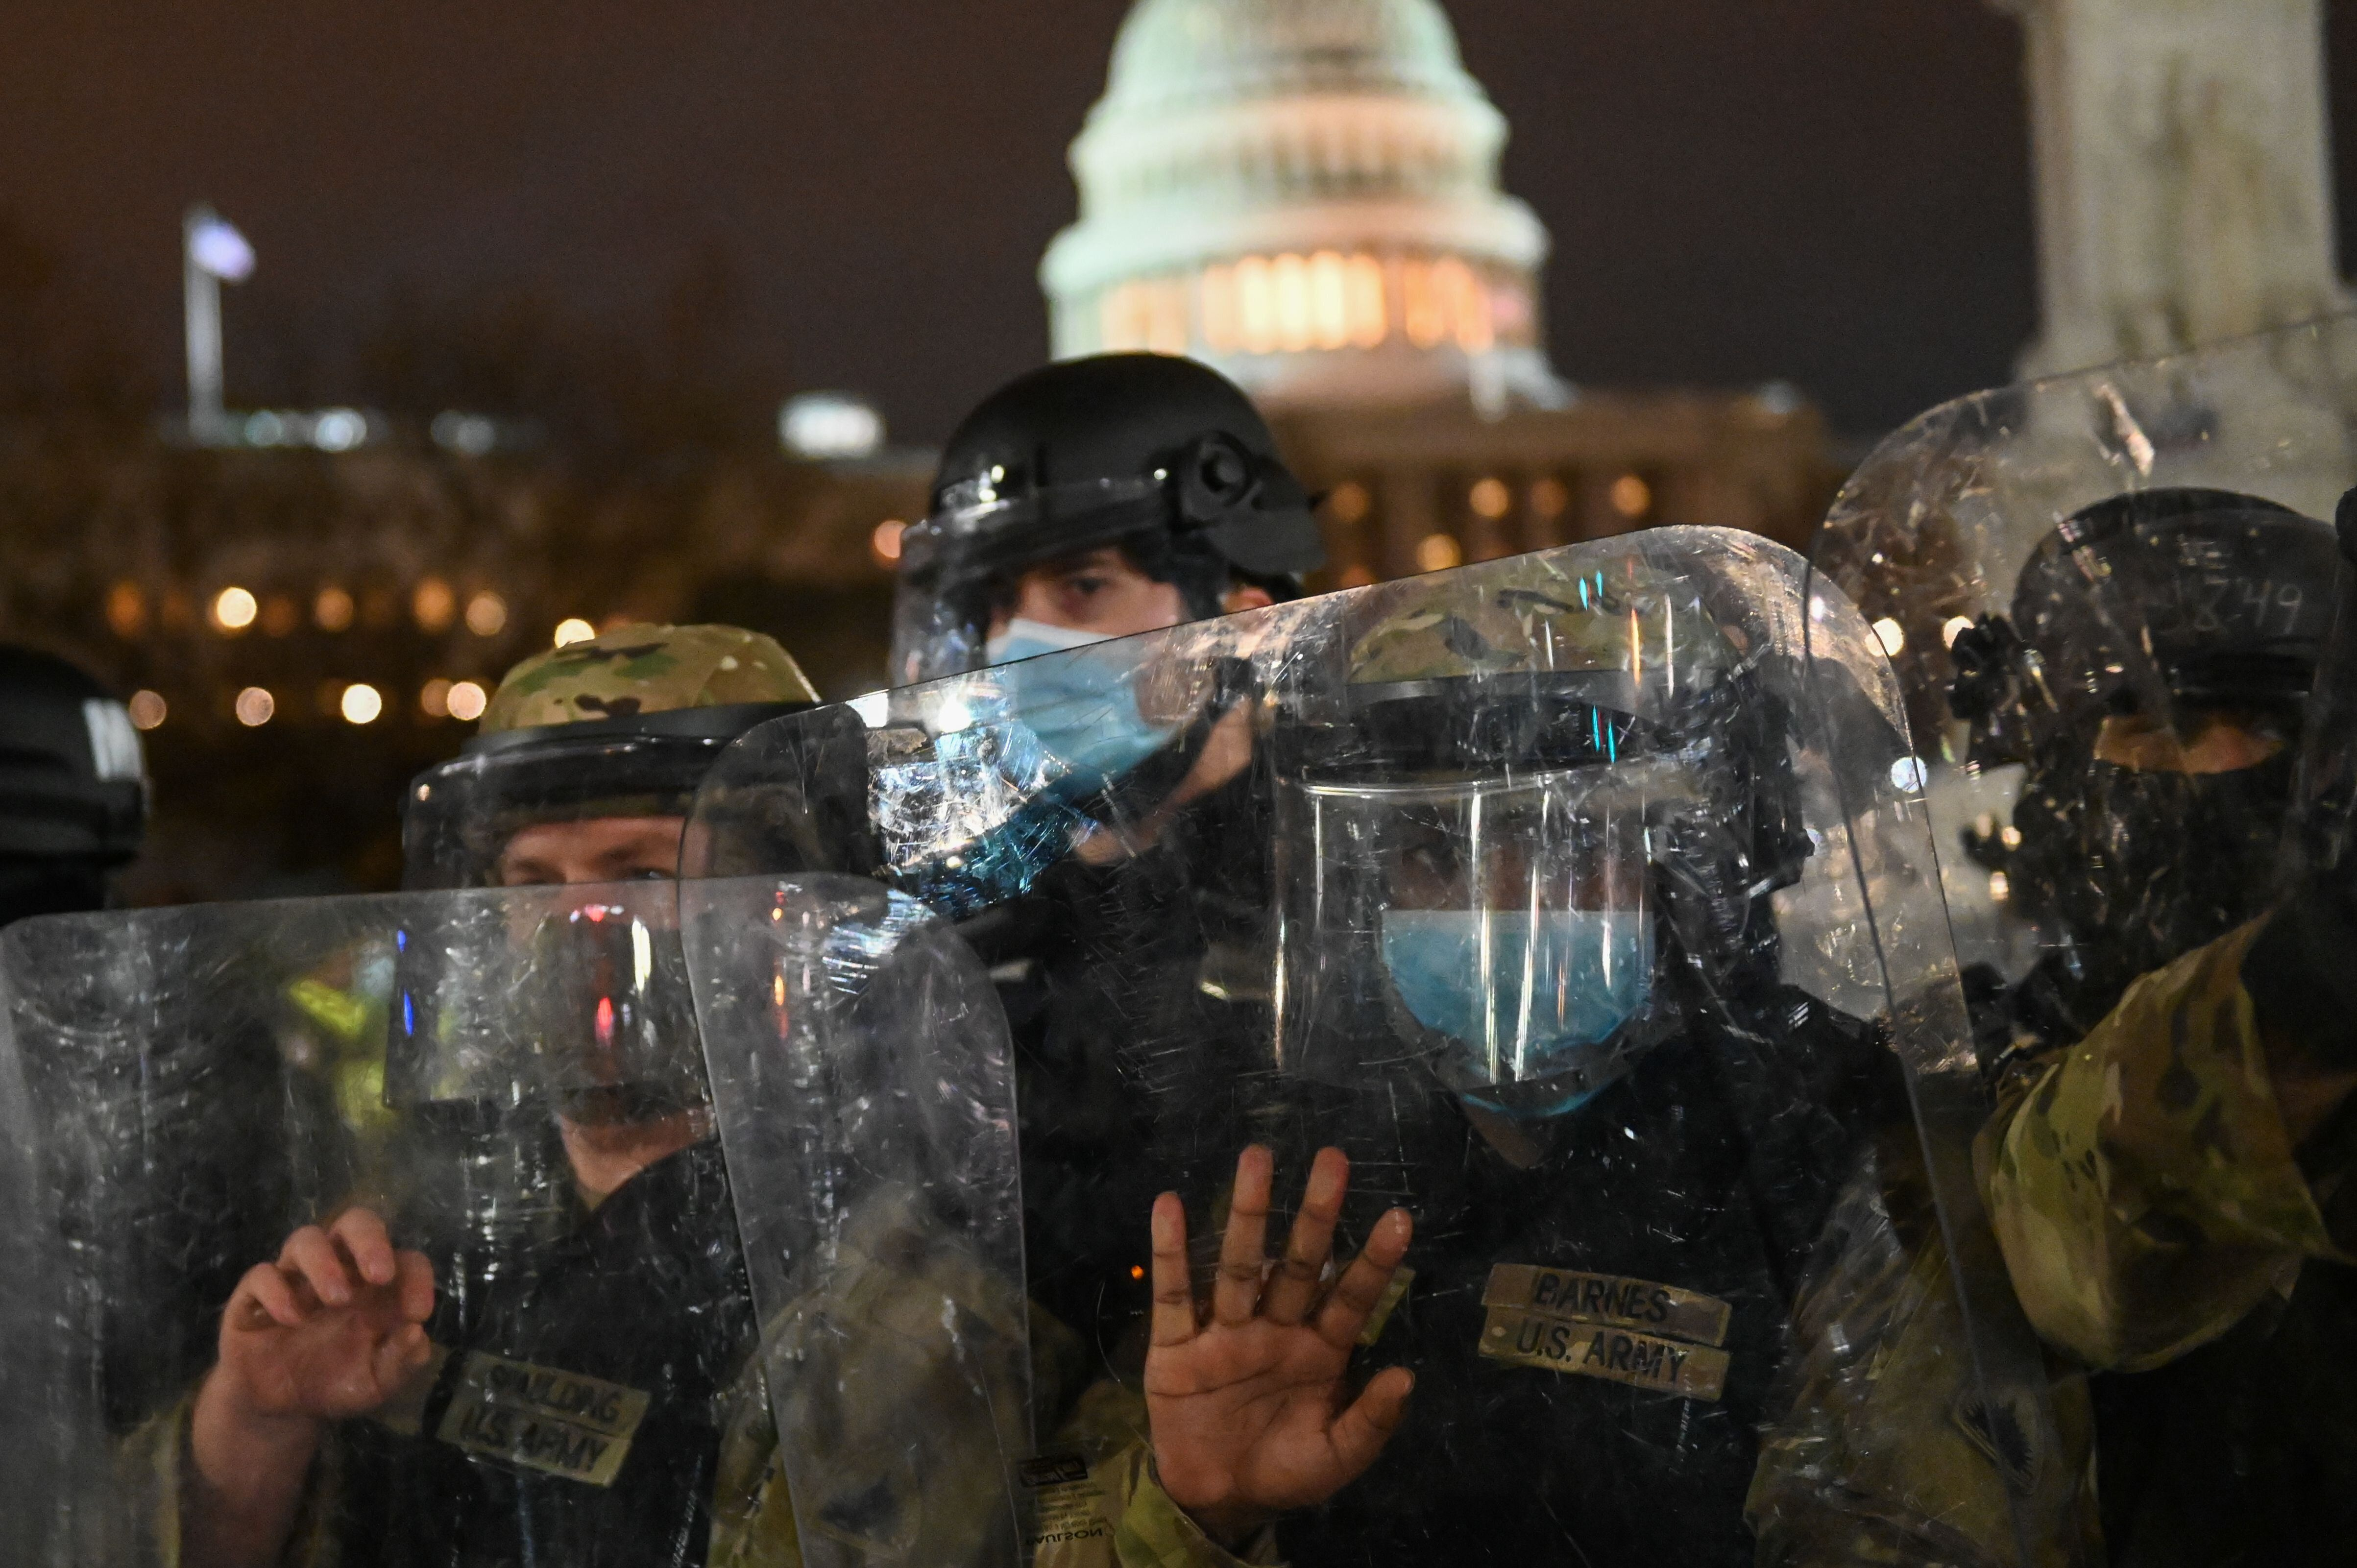 National Guard troops clear a street outside the Capitol building on Jan. 6.